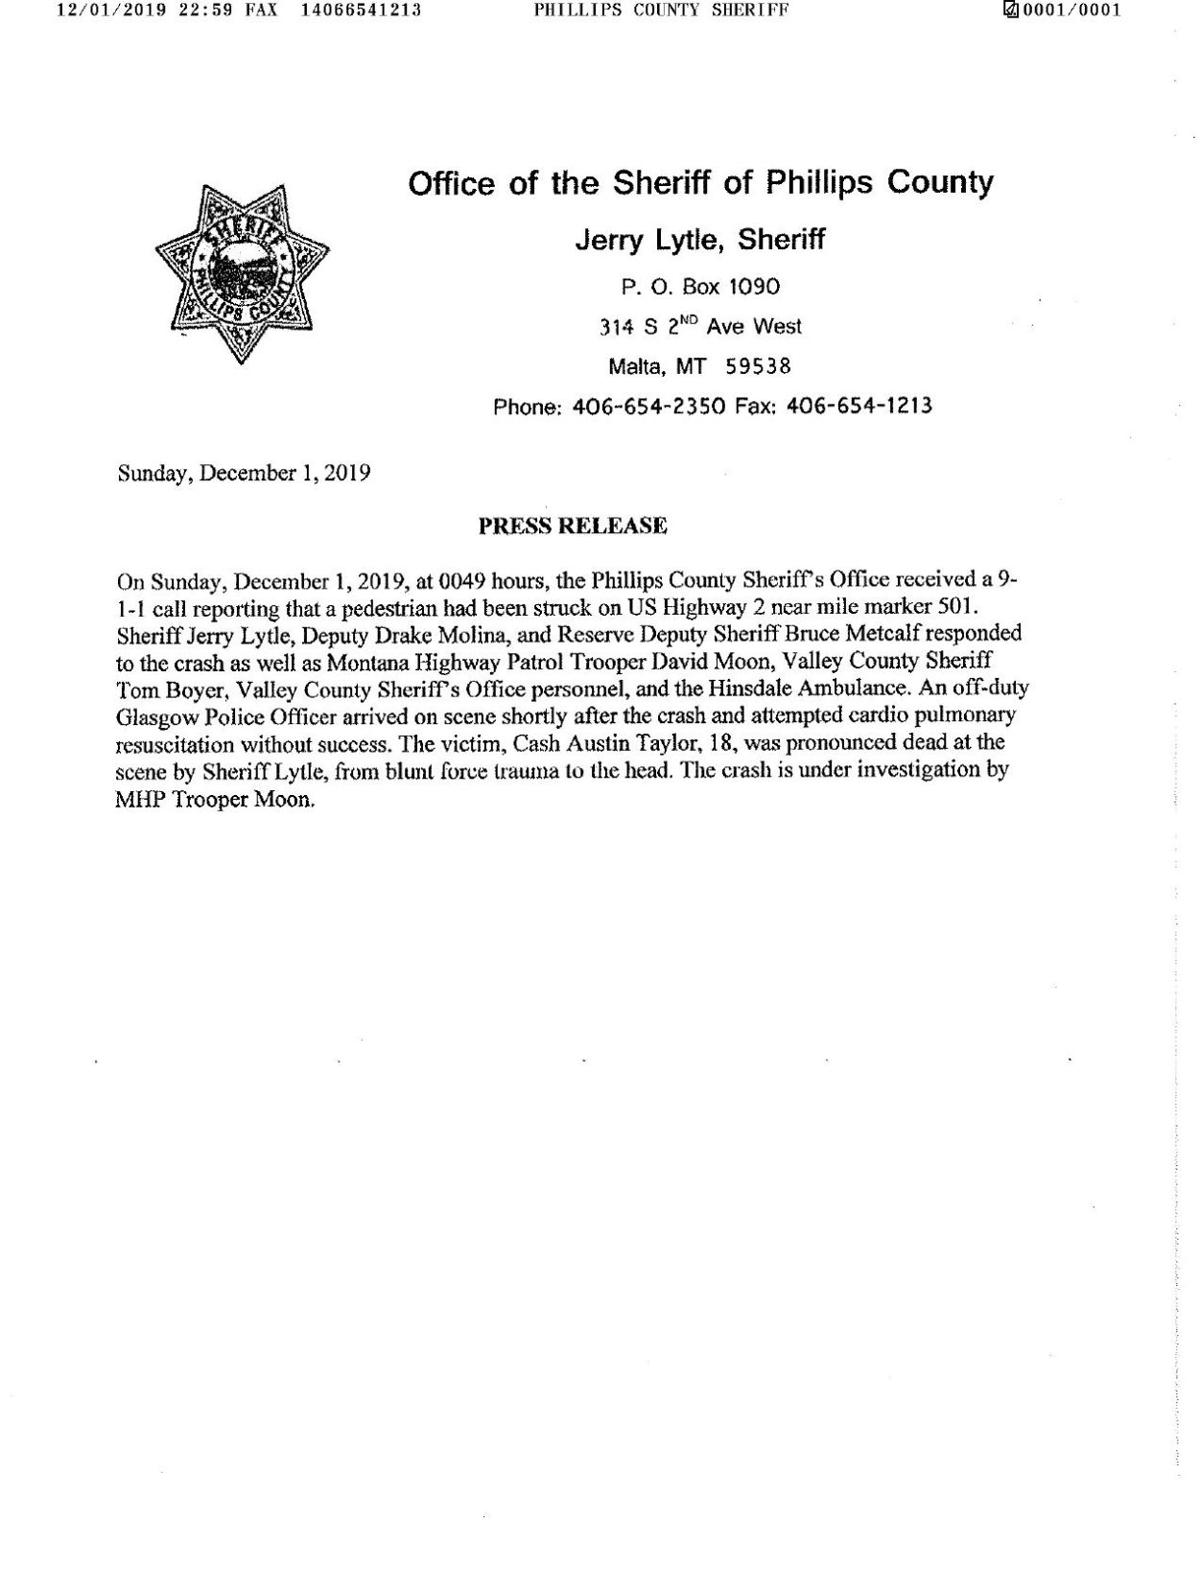 Phillips County Sheriff Office Press Release